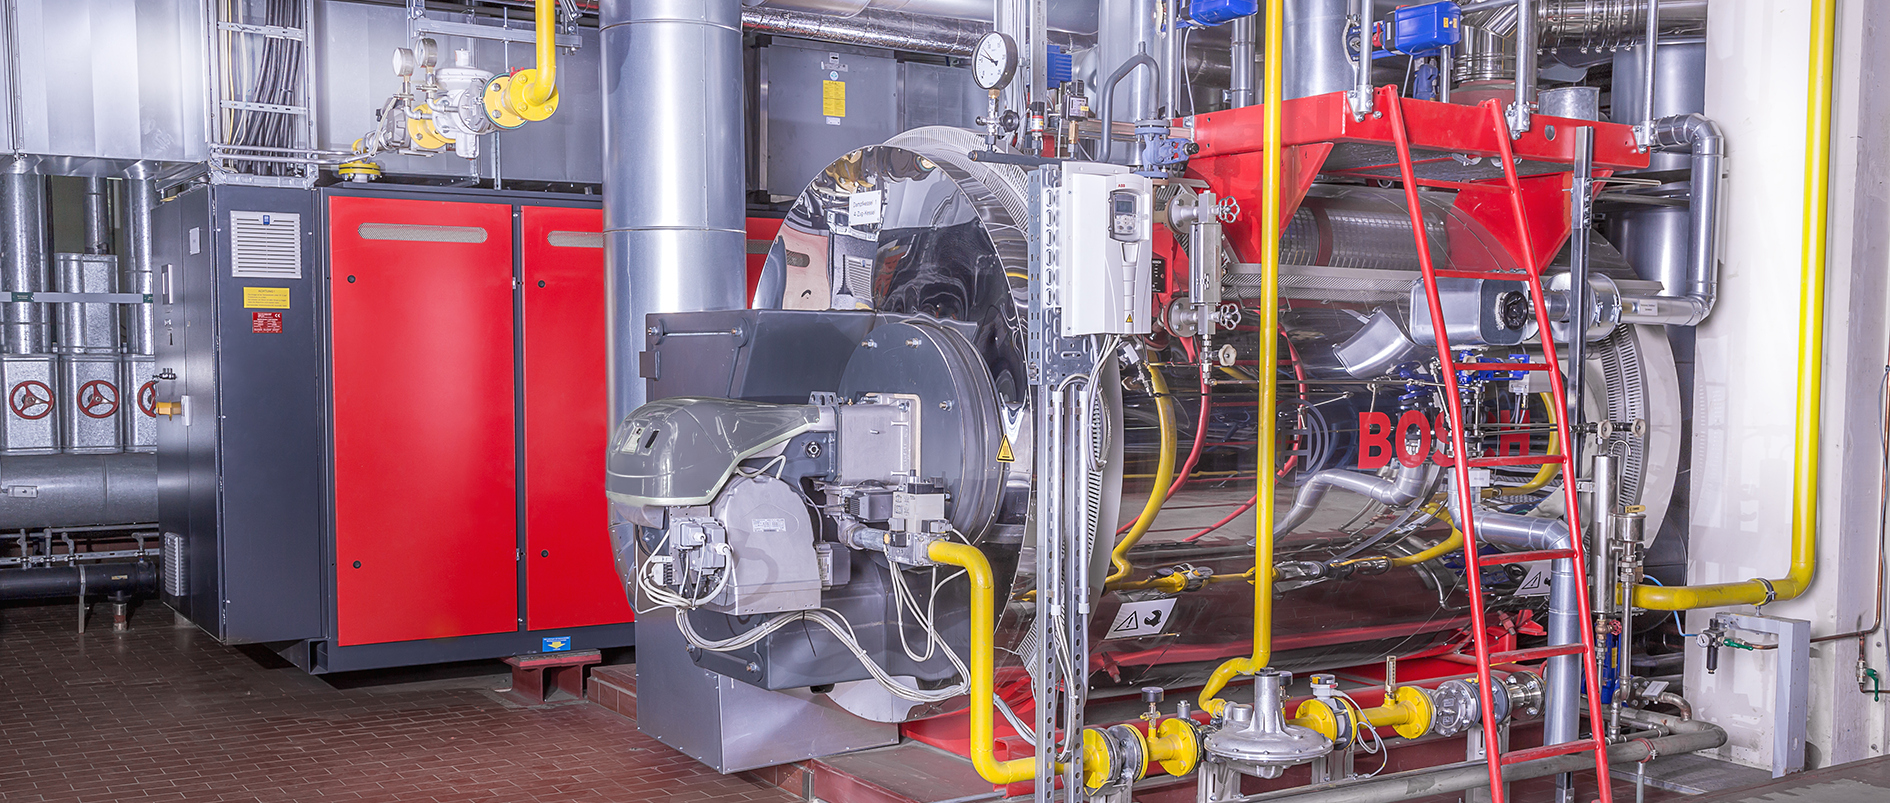 Combined heat and power unit with 4-pass waste heat boiler